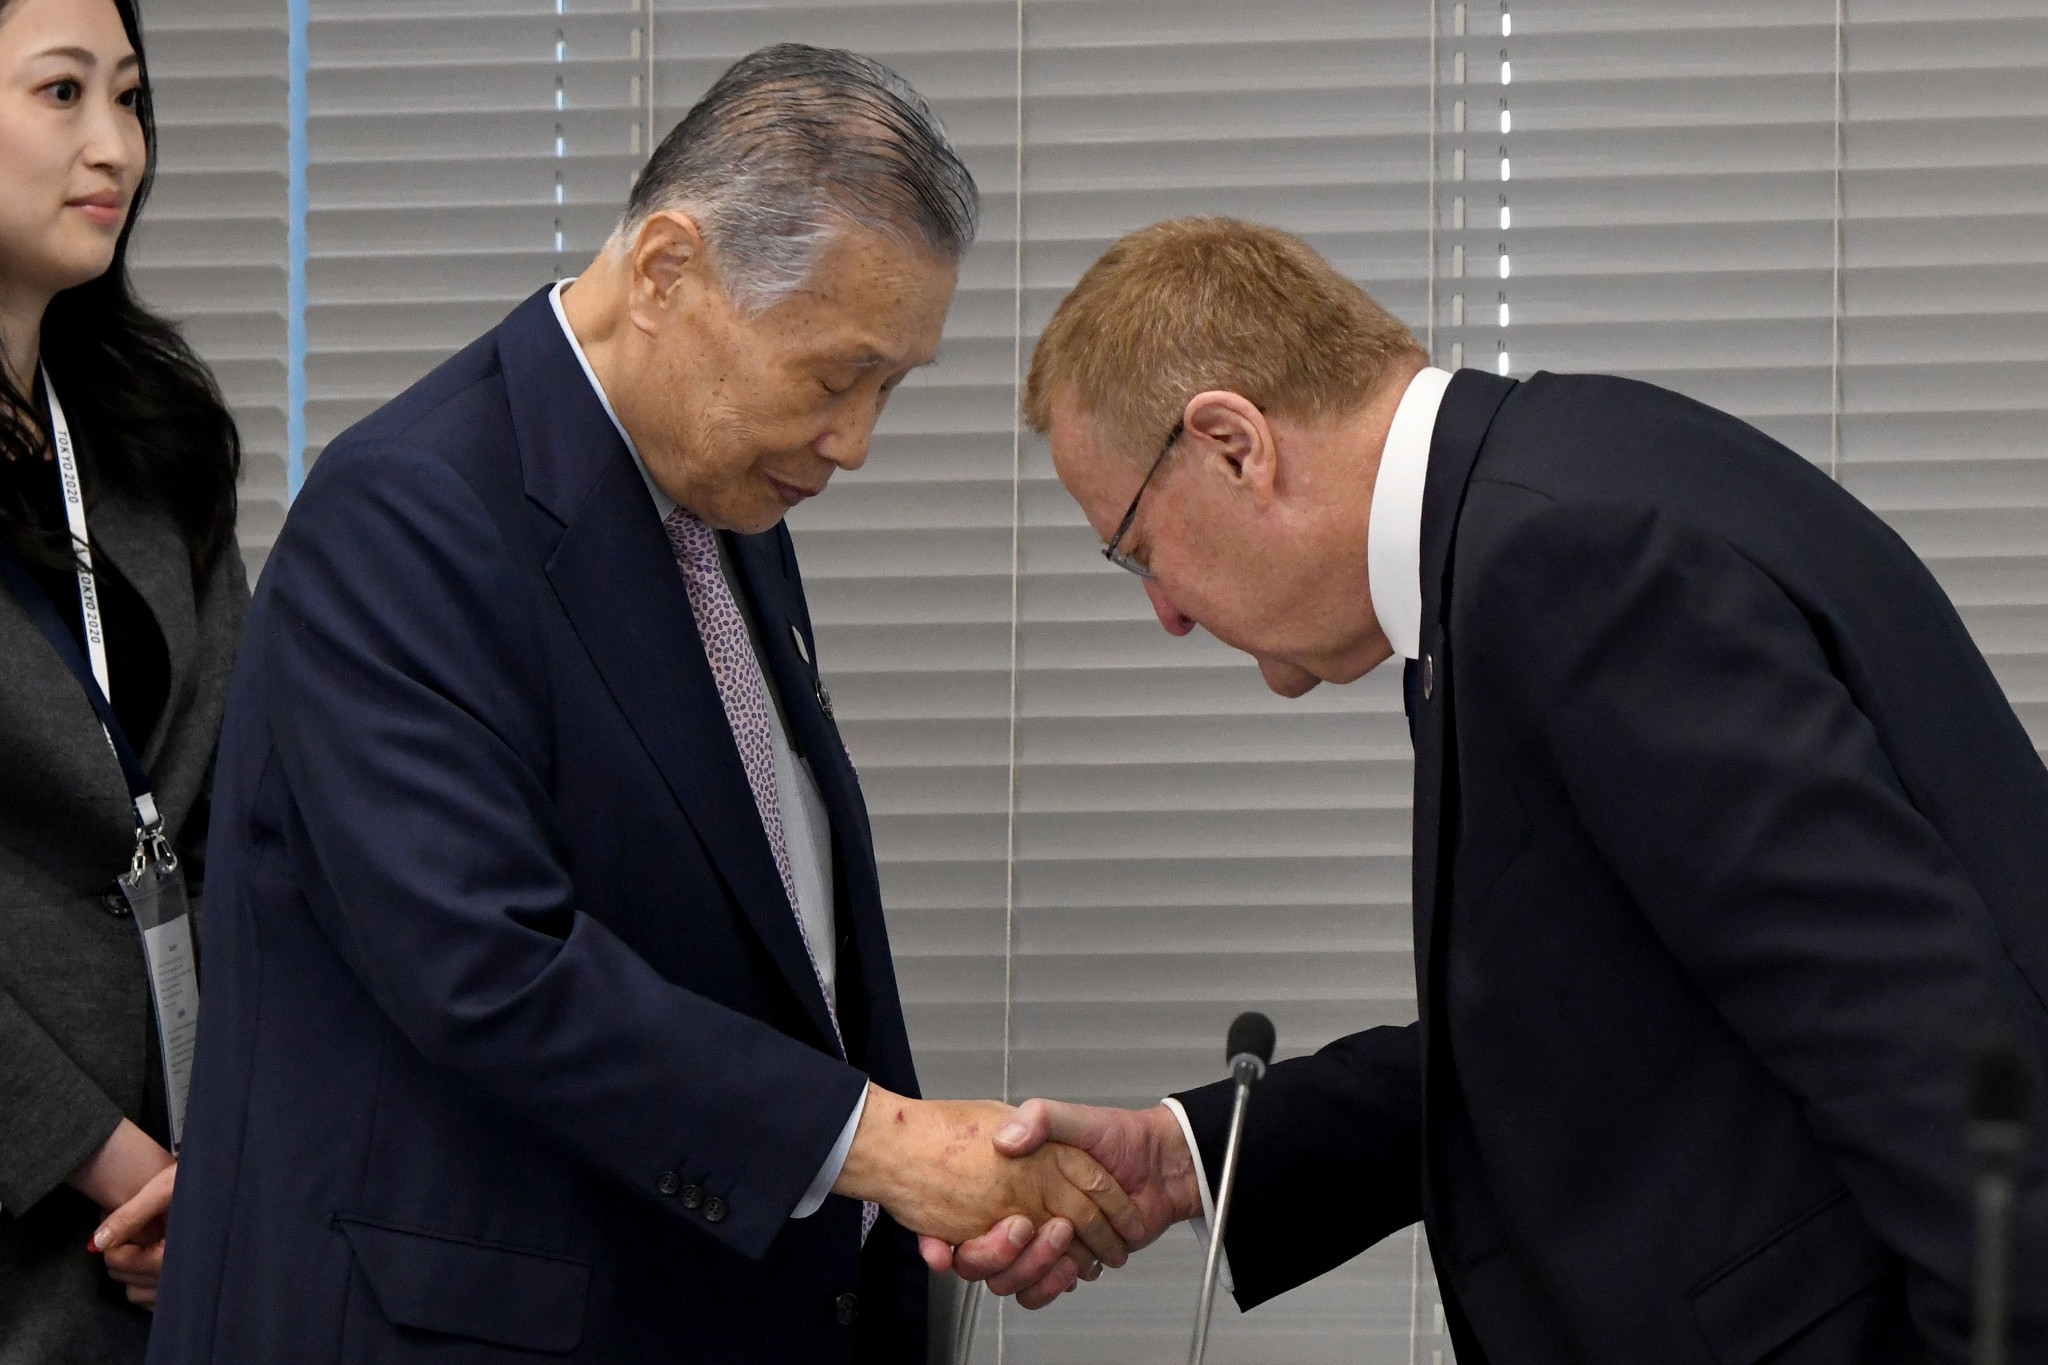 Tokyo 2020 President Yoshirō Mori and John Coates, right, hailed the interest of the Japanese population ©Getty Images